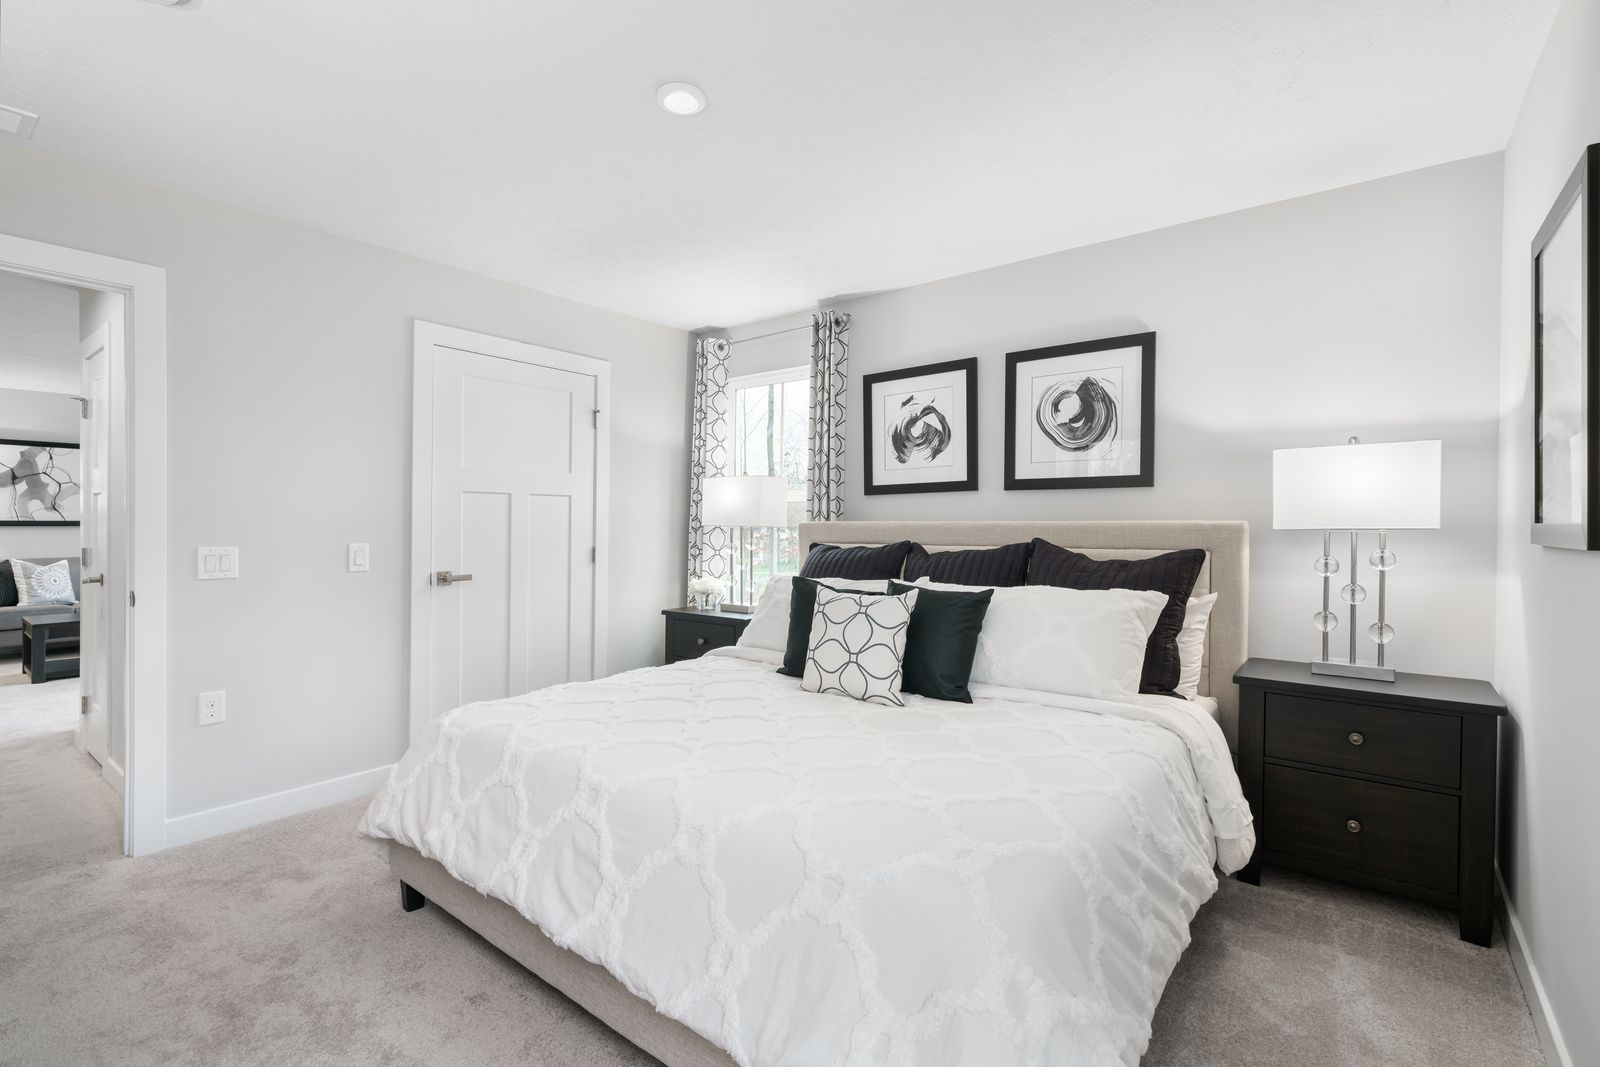 Bedroom featured in the Aruba Bay By Ryan Homes in Canton-Massillon, OH